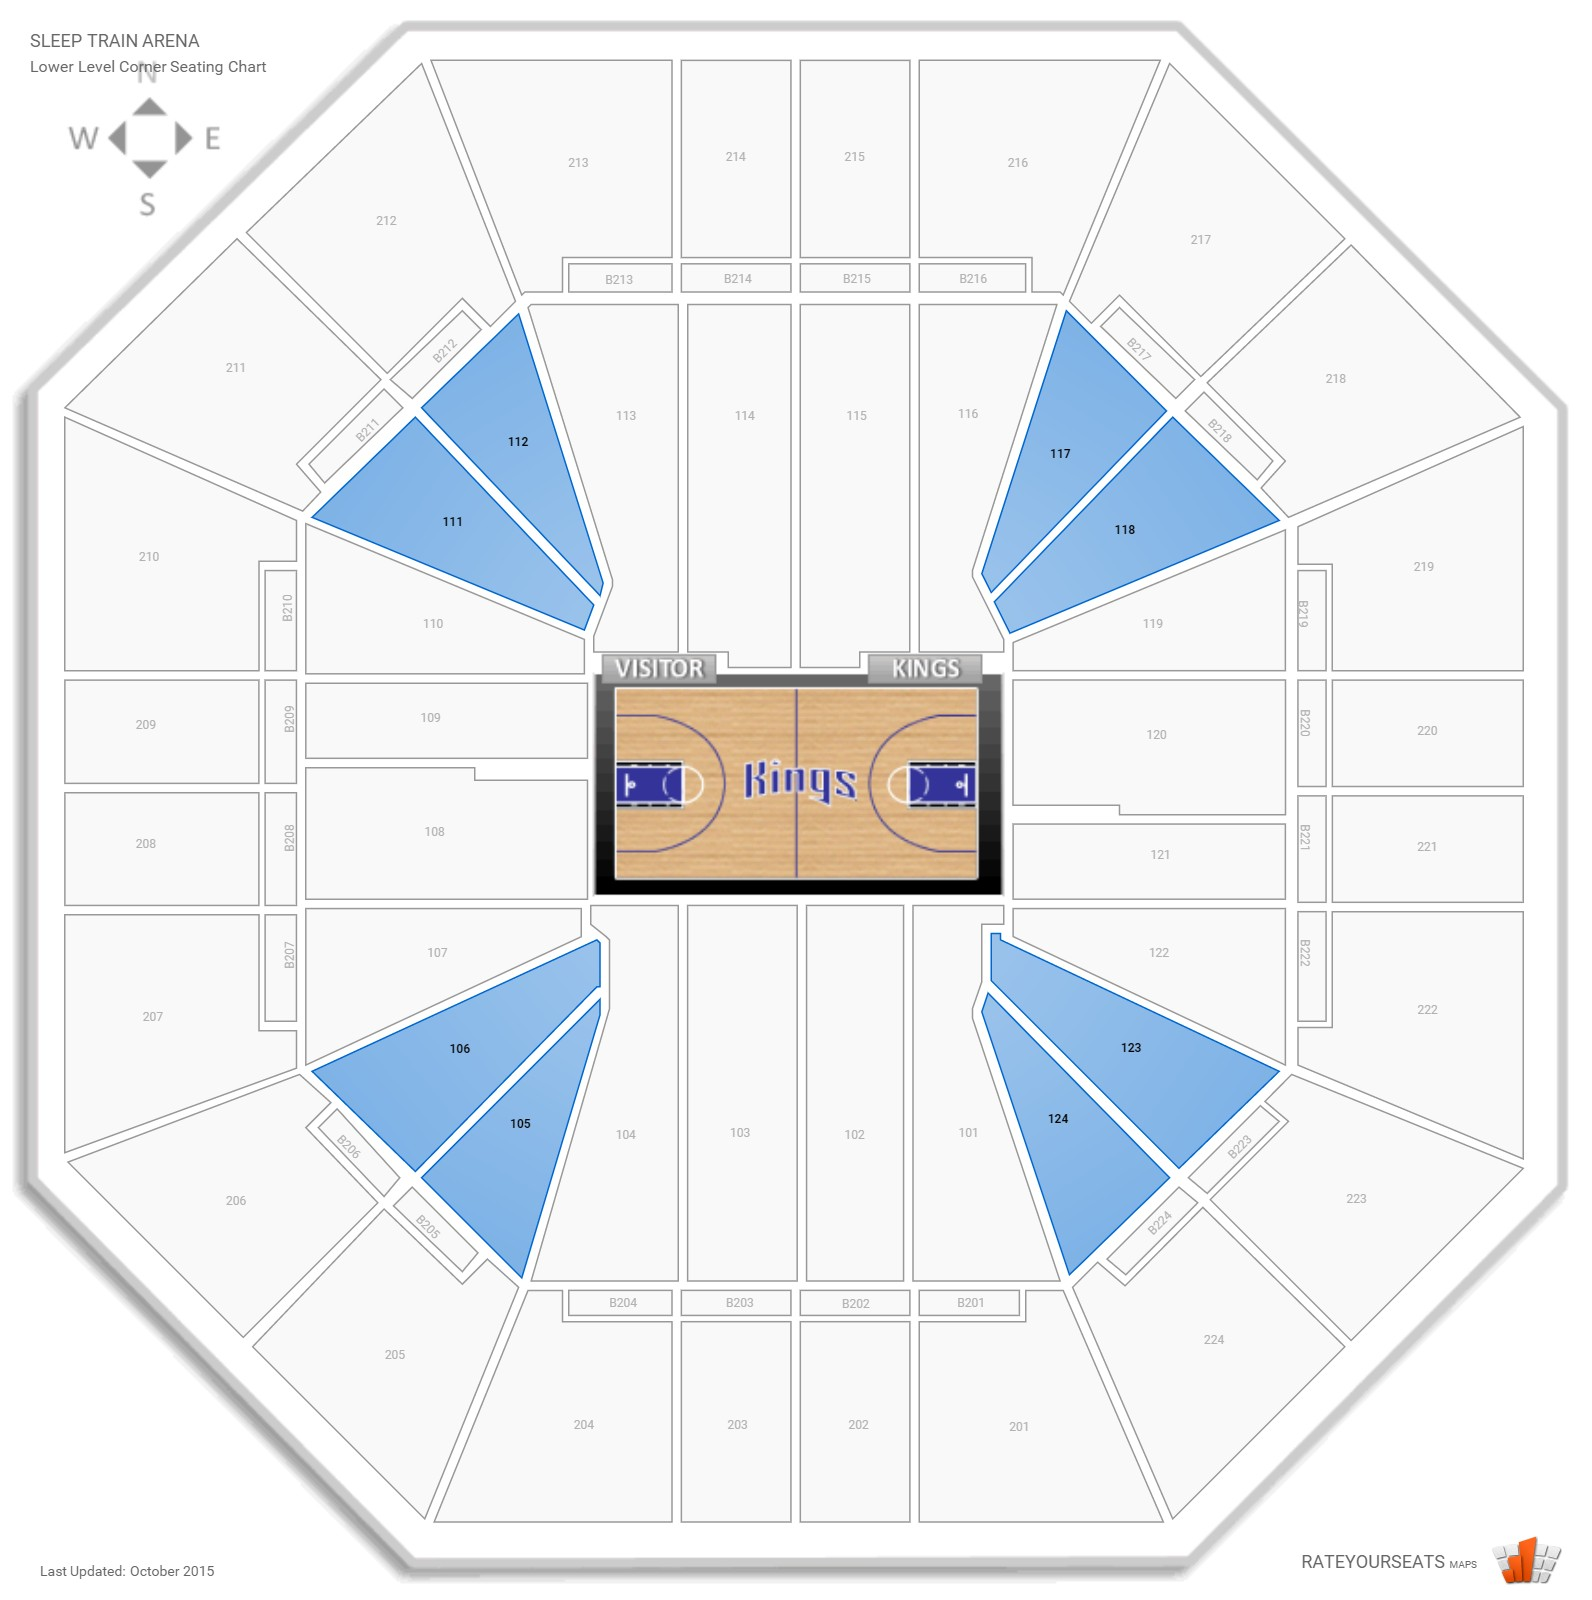 Sleep Train Arena Lower Level Corner seating chart